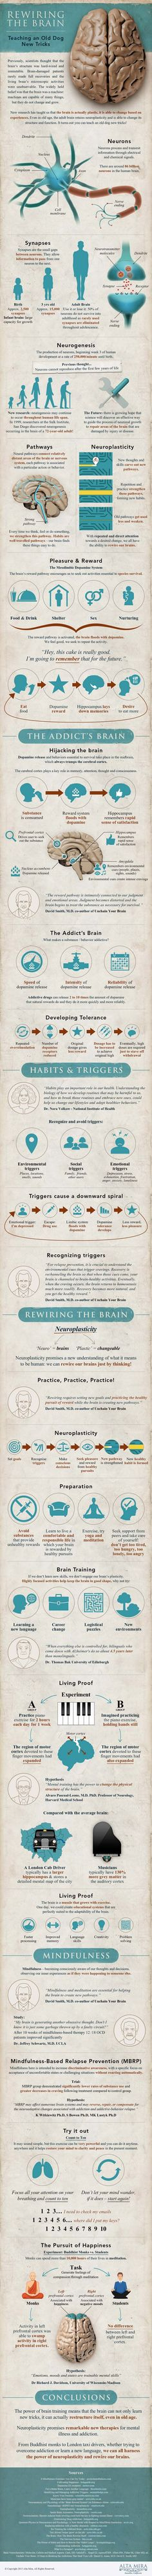 Rewiring The Brain